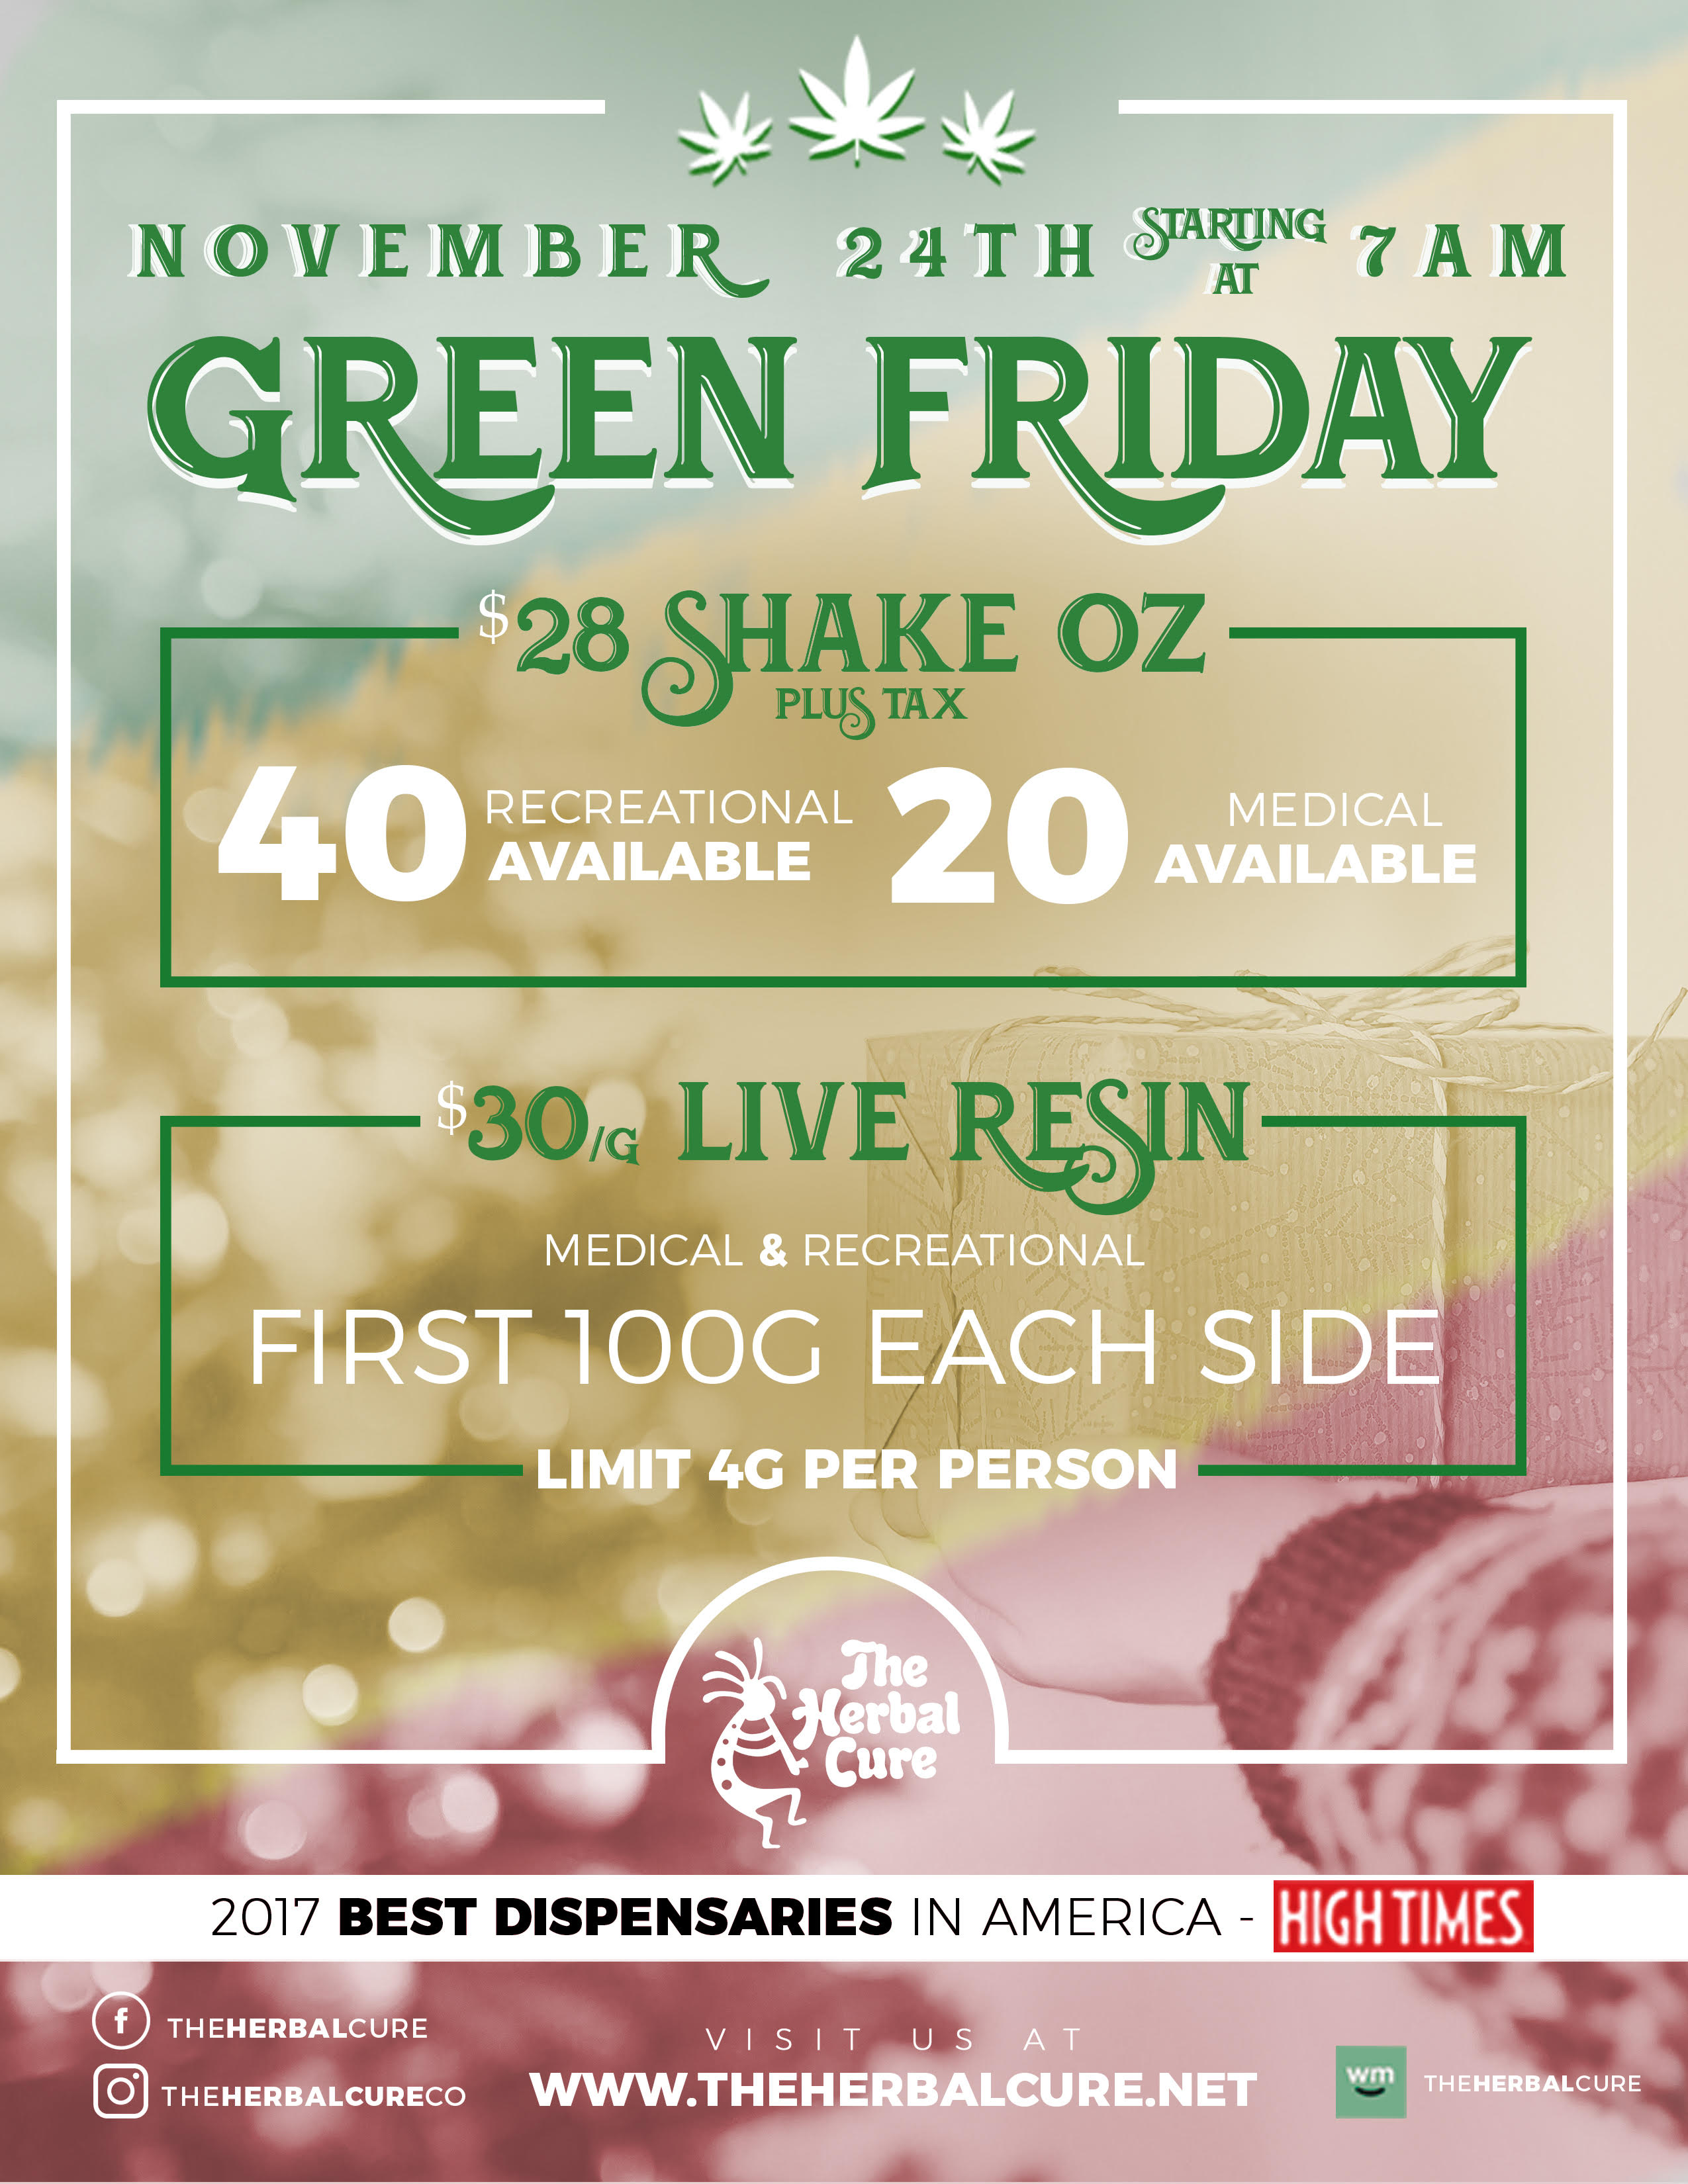 Green Friday Sales 30 Live Resin 28 Ounce Shakes More The Herbal Cure Denver S Premier Cannabis Dispensary Simply The Best